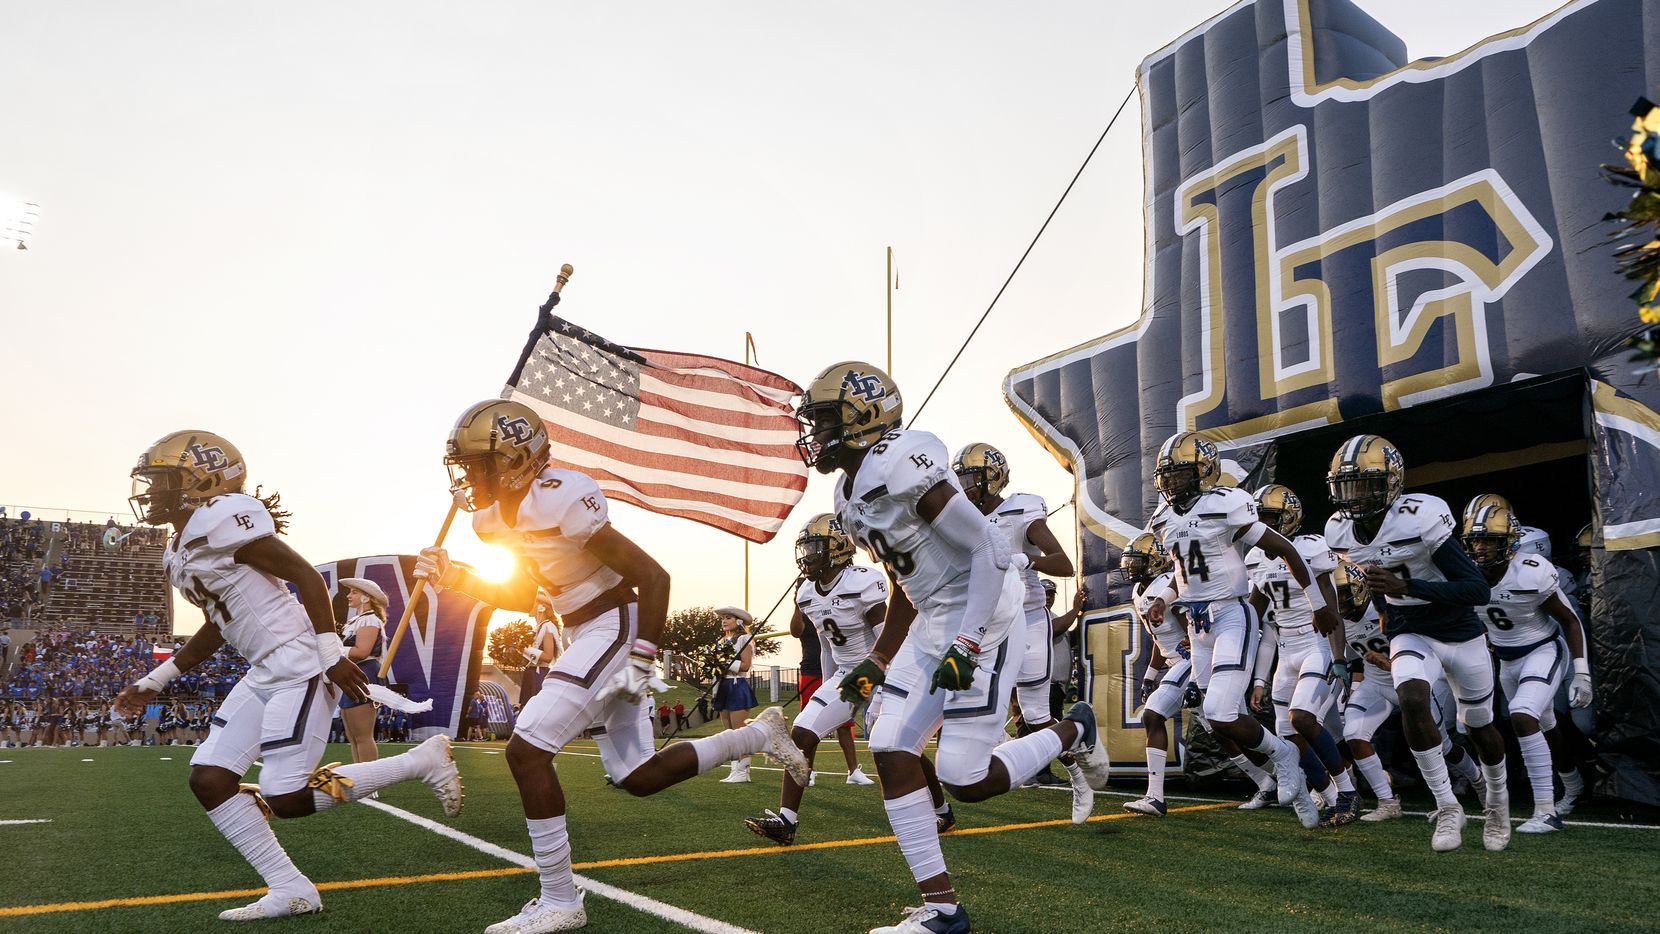 Little Elm takes the field before a high school football game against Plano West on Friday, Sept. 10, 2021 at John Clark Stadium in Plano, Texas. (Jeffrey McWhorter/Special Contributor)